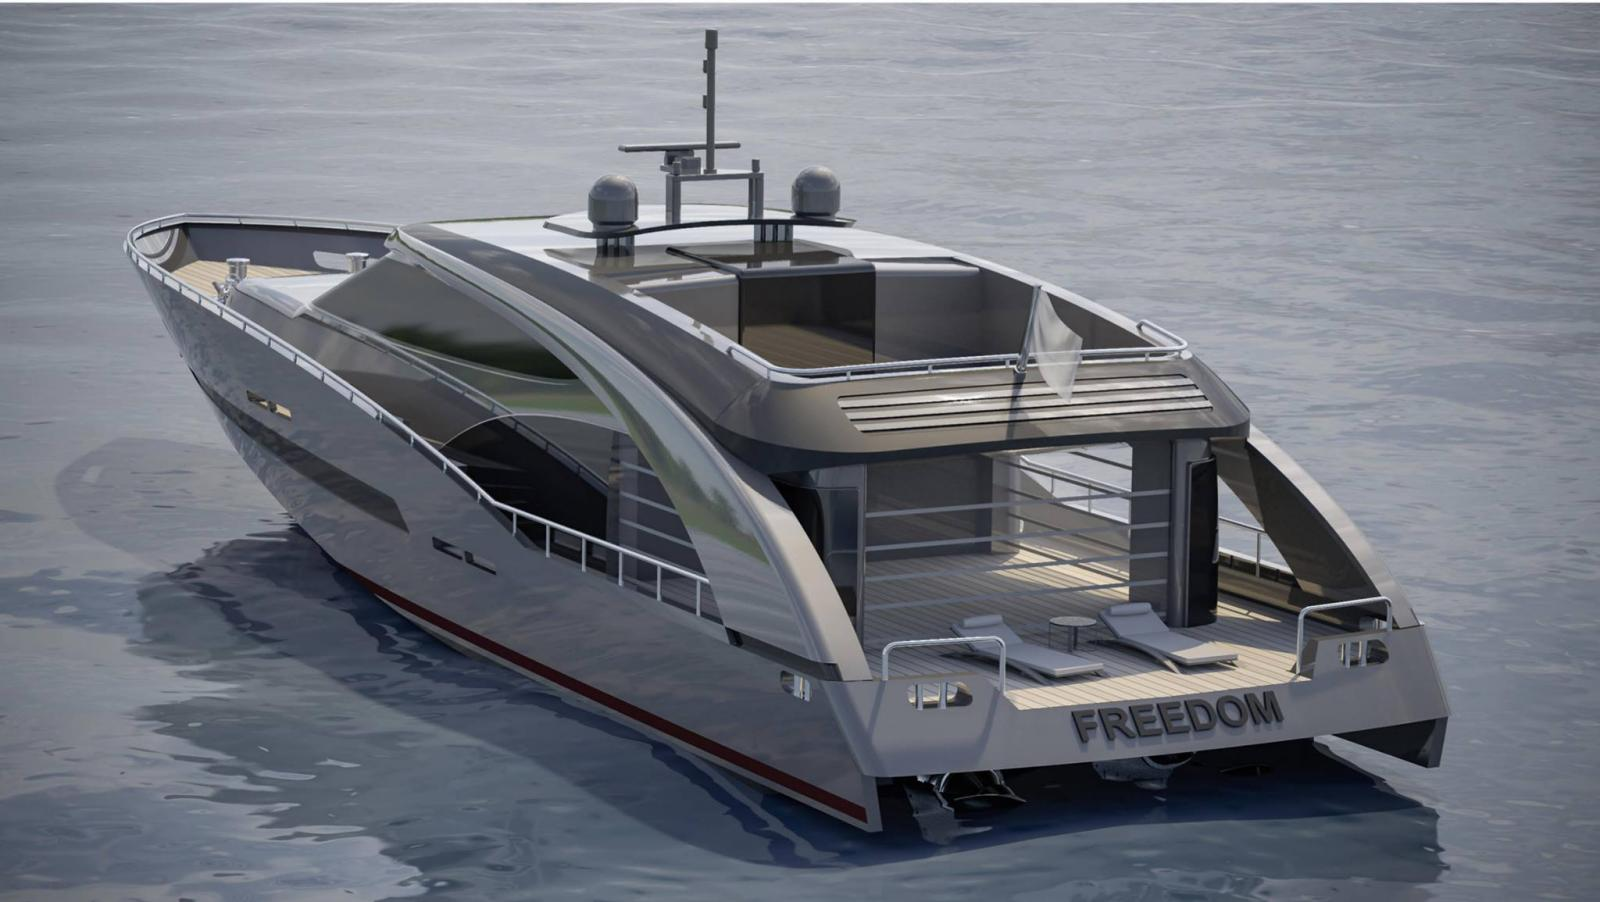 Freedom Cerri Cantiere Navali Yacht Side View